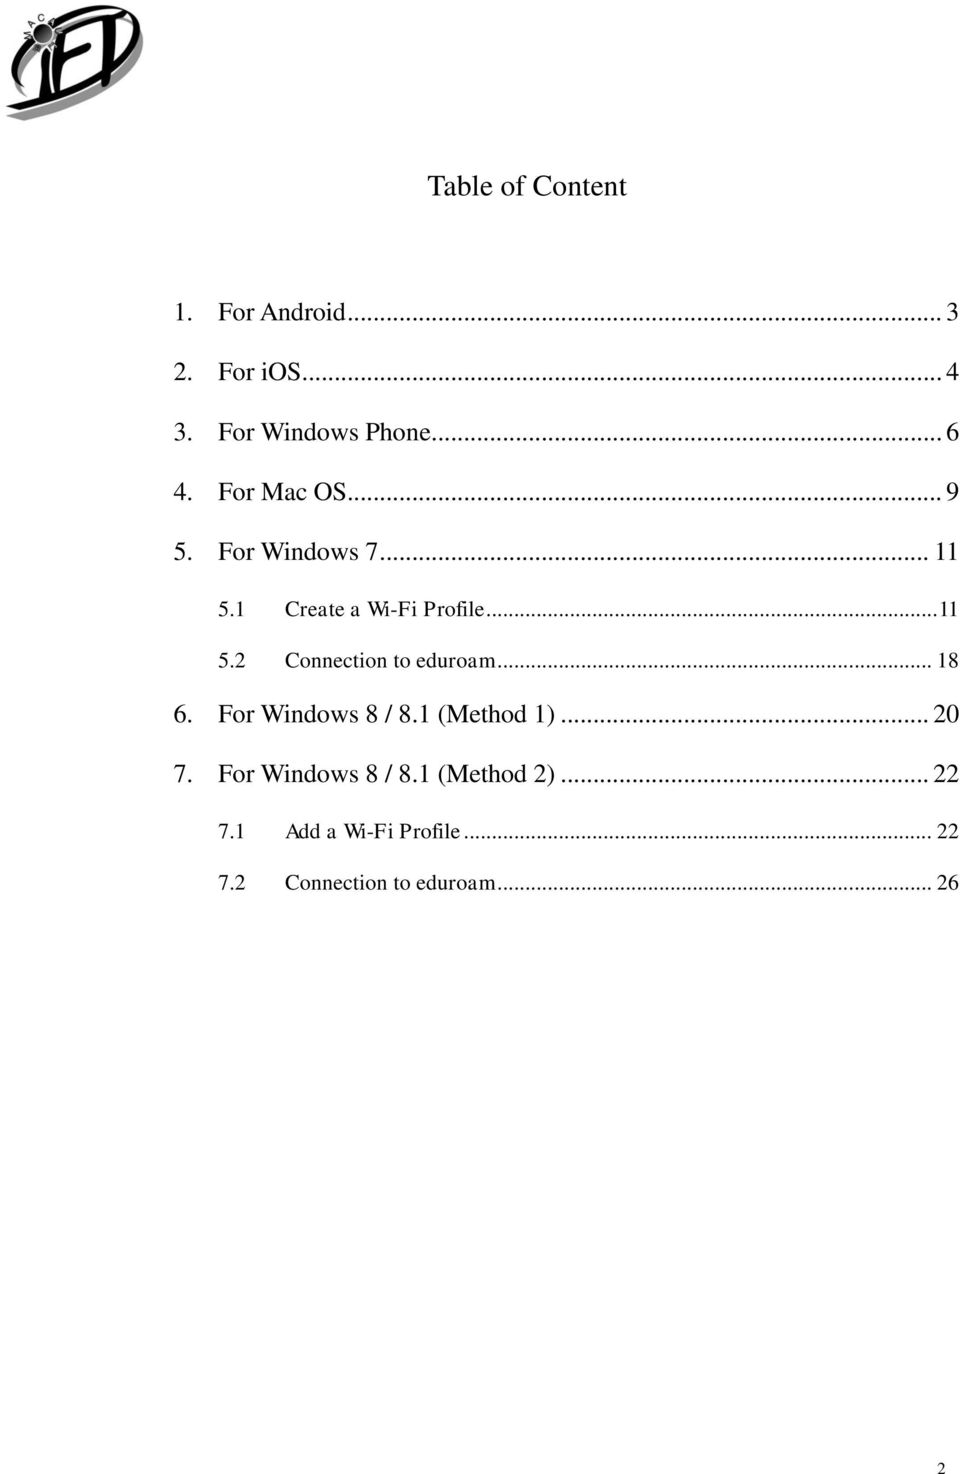 .. 18 6. For Windows 8 / 8.1 (Method 1)... 20 7. For Windows 8 / 8.1 (Method 2).